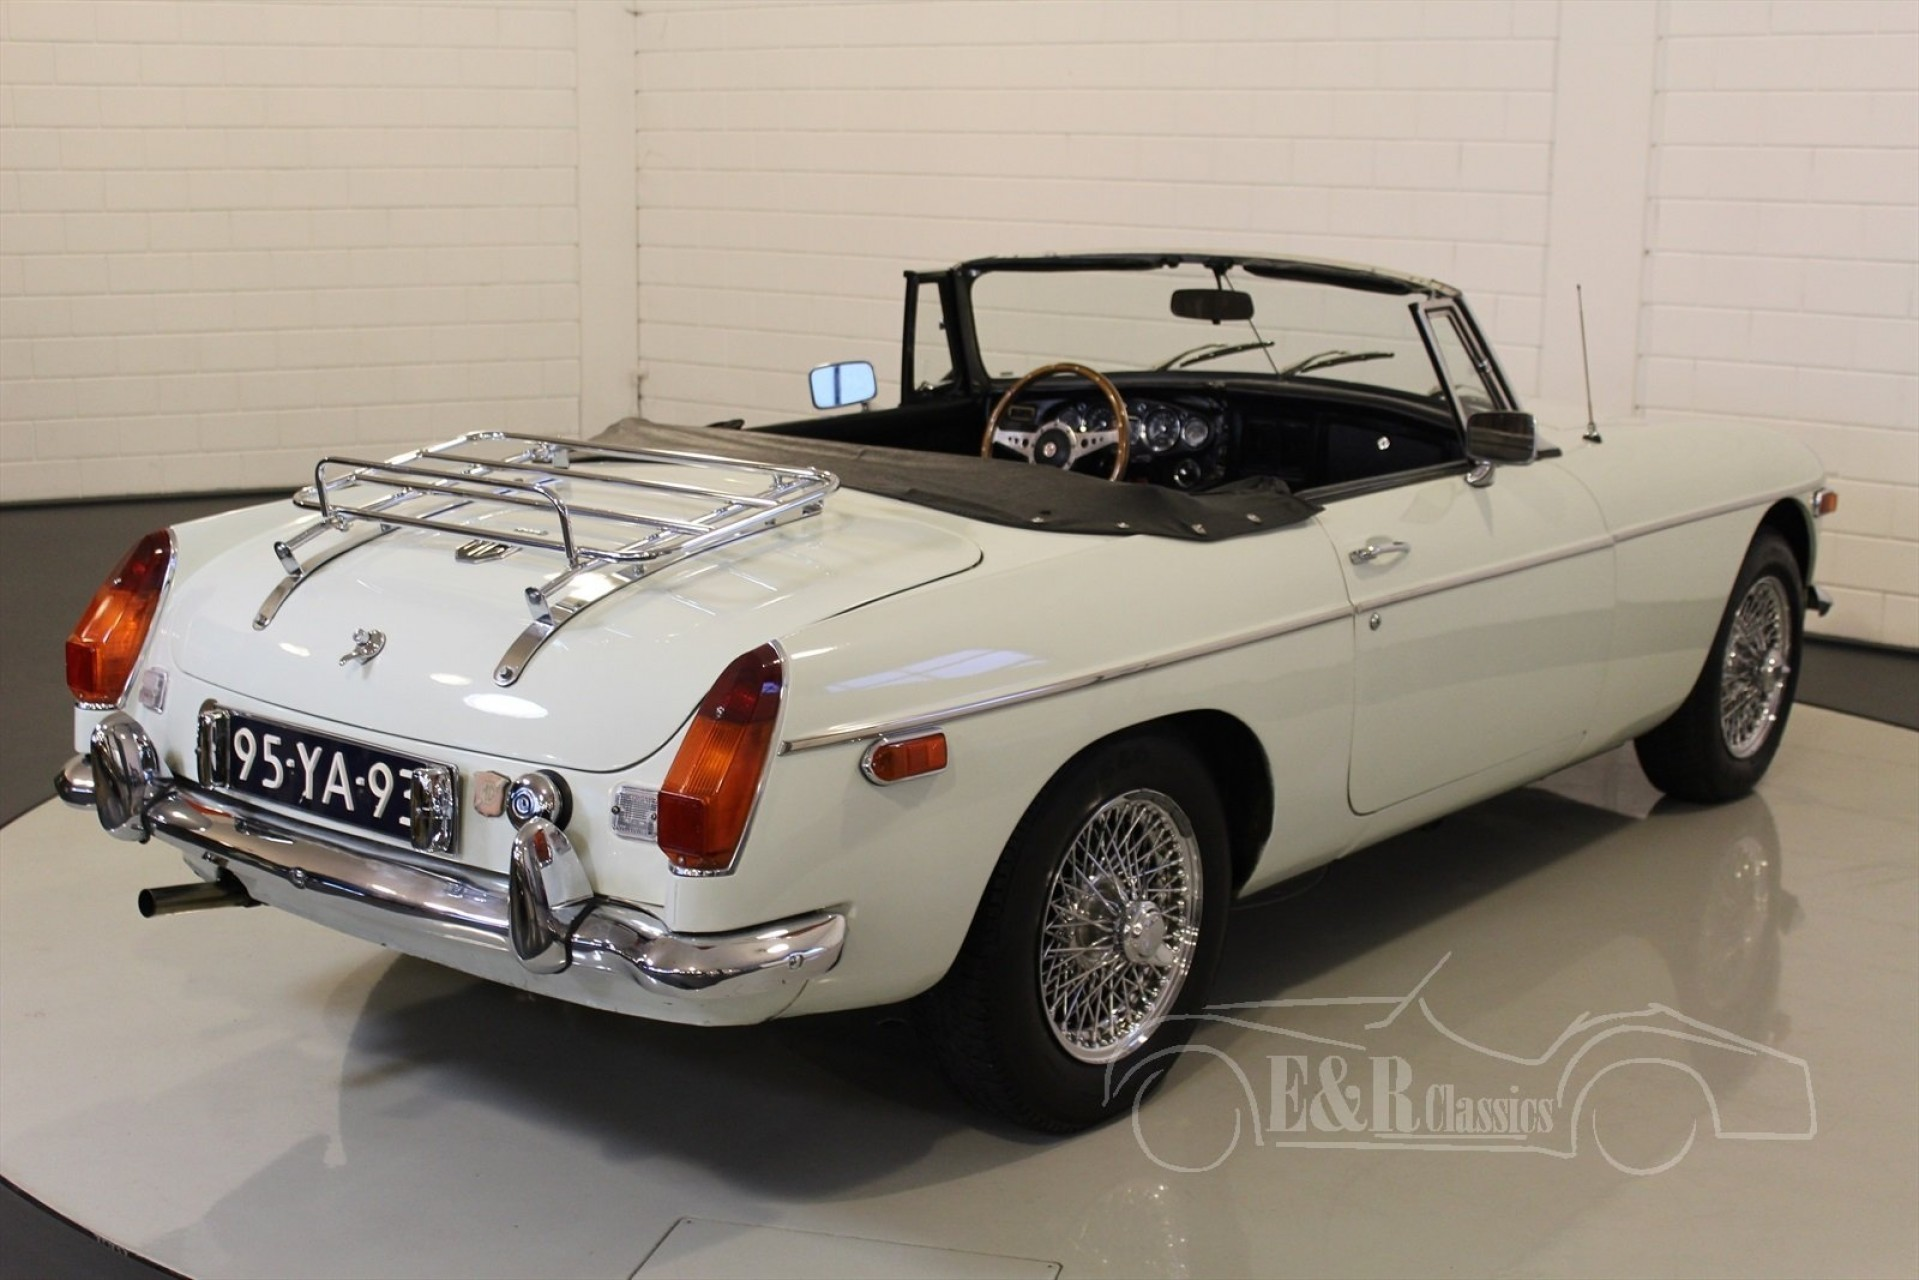 mgb 1975 cabriolet vendre erclassics. Black Bedroom Furniture Sets. Home Design Ideas